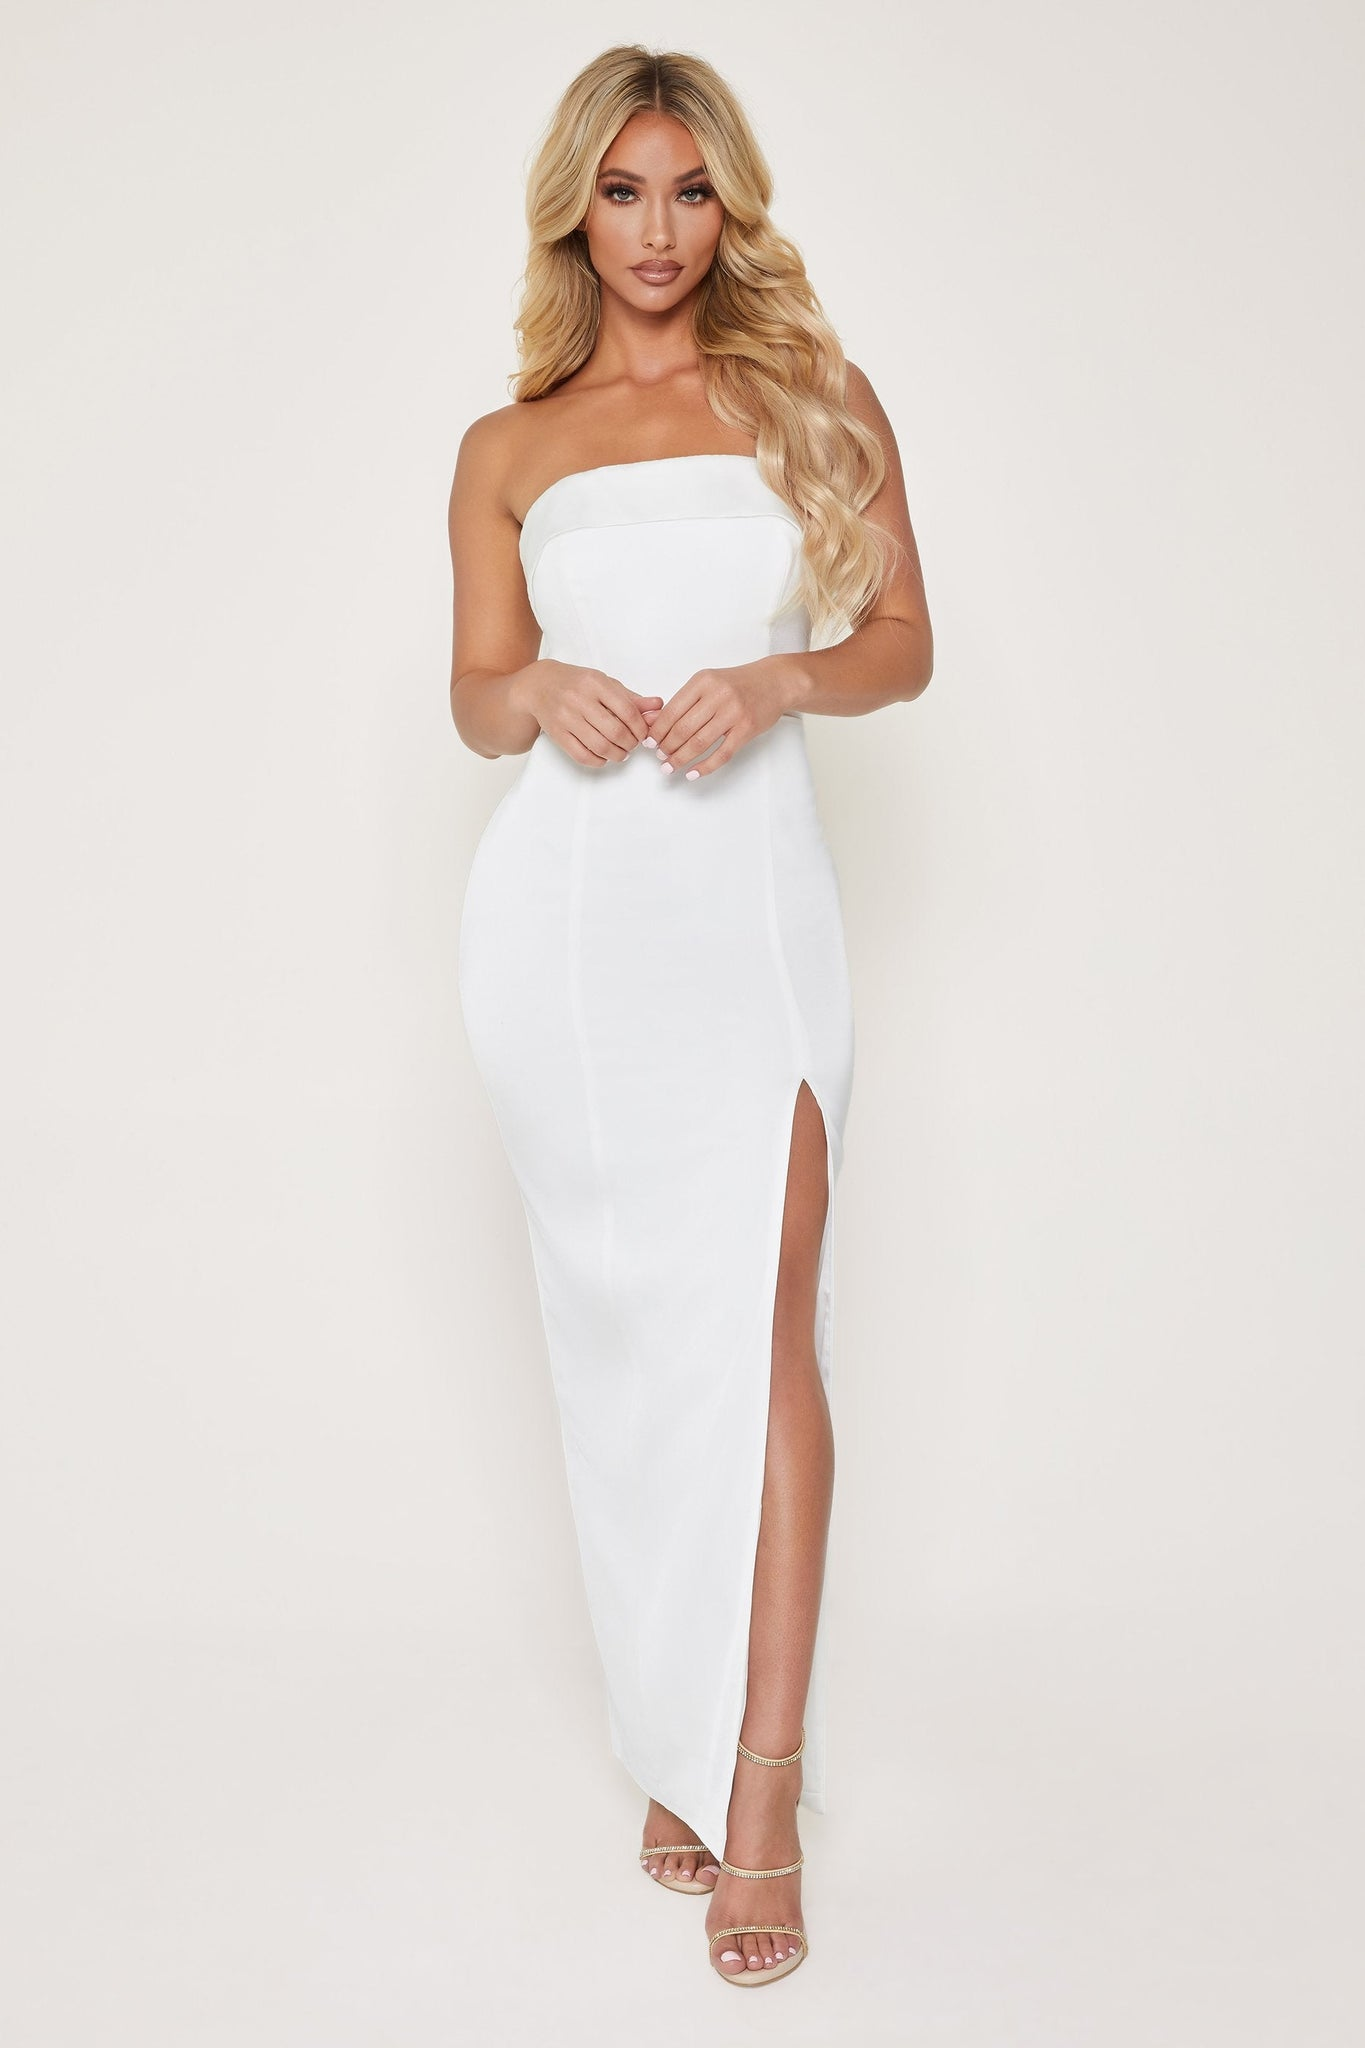 Celine Strapless Maxi Dress - White - MESHKI